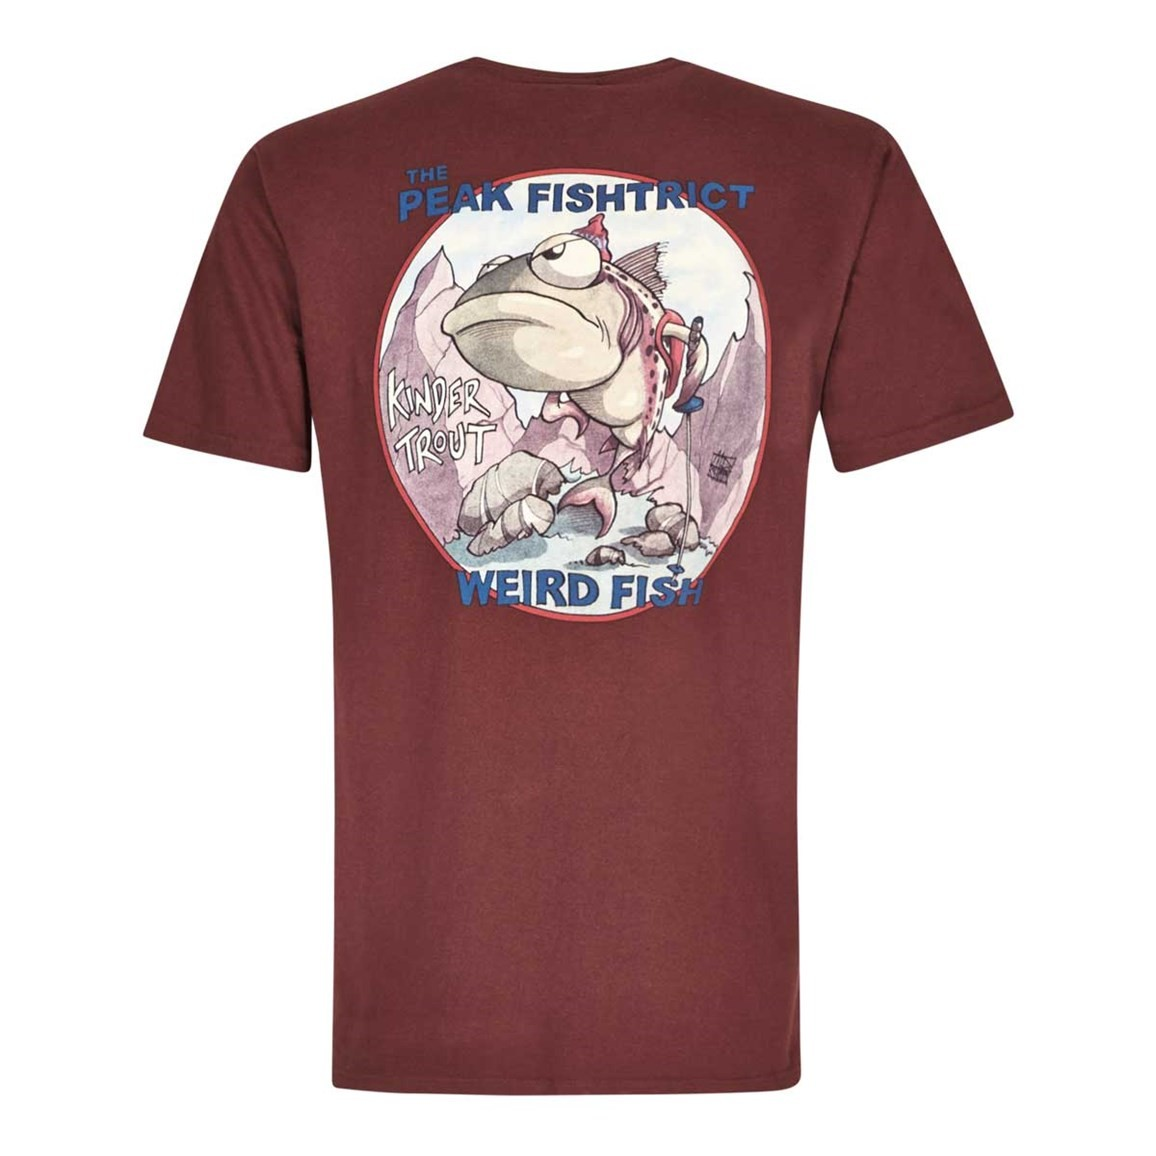 Weird Fish Peak Fishtrict Printed Artist T-Shirt Conker